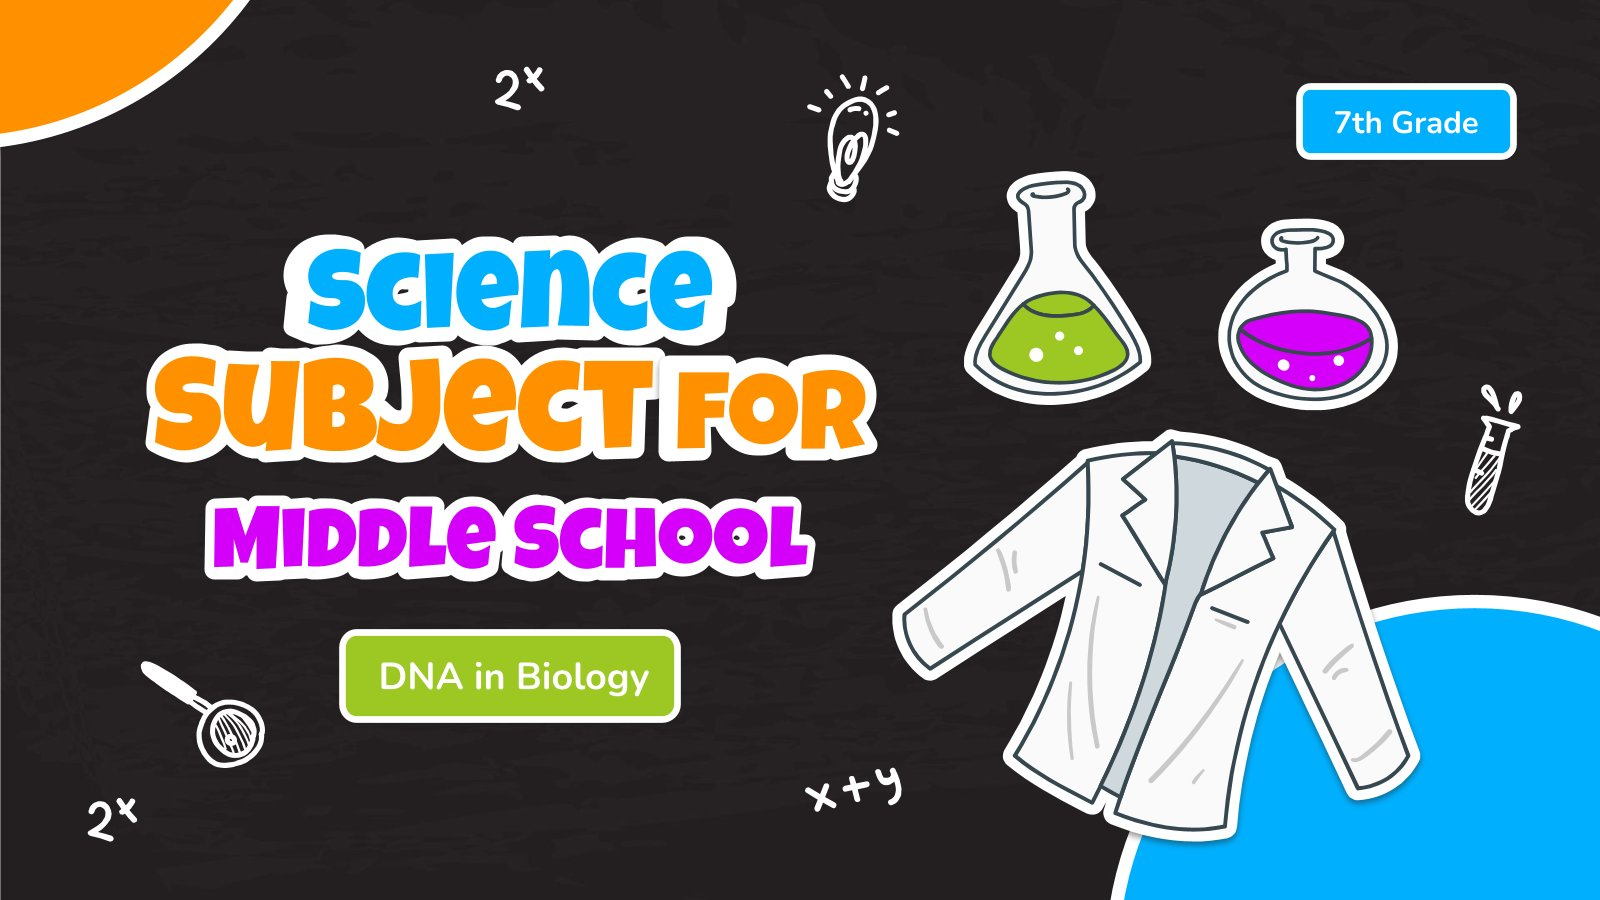 Science Subject for Middle School - 7th Grade: DNA in Biology presentation template